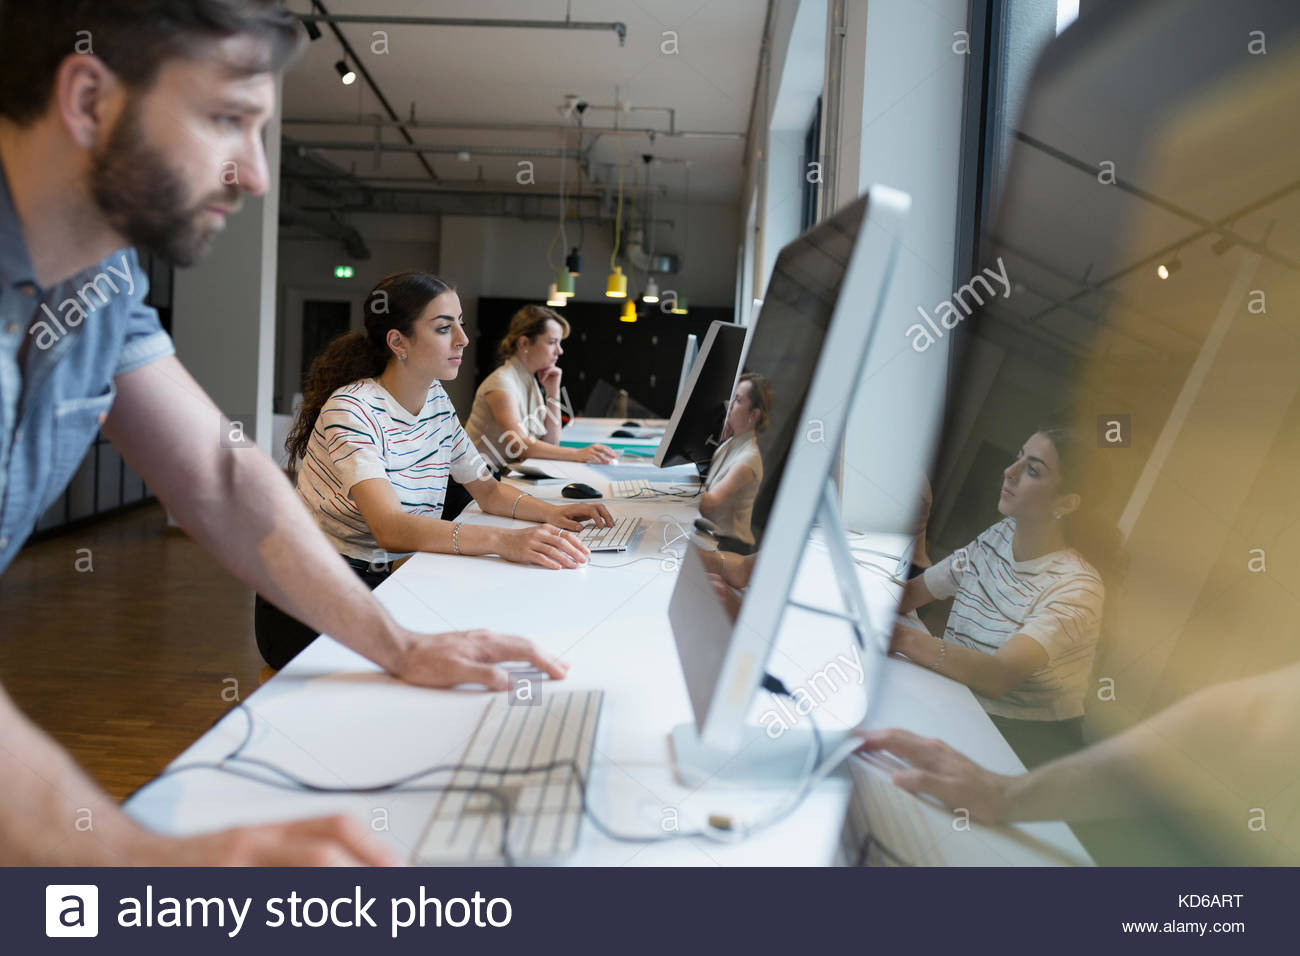 Business people using computers at counter in open plan office - Stock Image